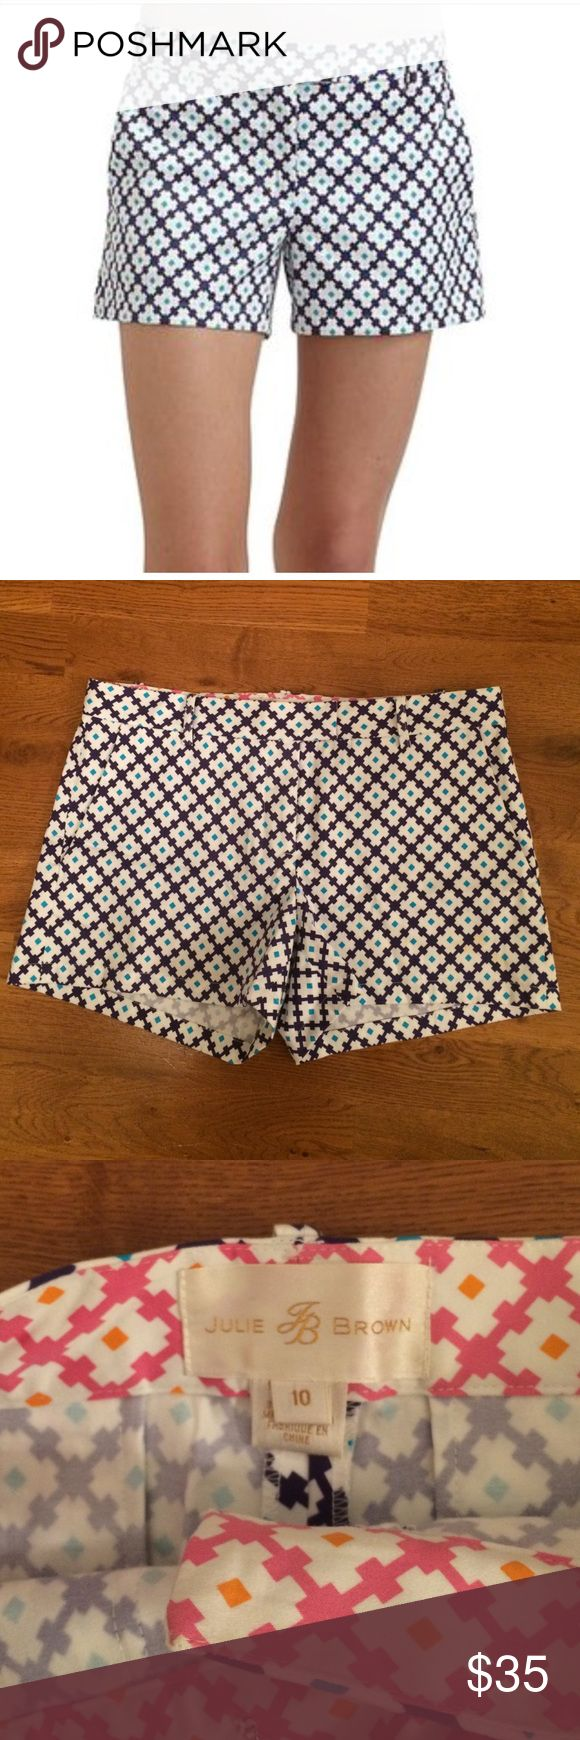 Julie Brown Shorts Julie Brown Shorts turquoise and ivory mosaic pattern                                                                            - Size: 10                                                                          - 97% Cotton and 3% Spandex                                         - Low waist   Belt Loops                                                   - NWOT - No stains, rips, holes, pilts, etc Julie Brown Shorts